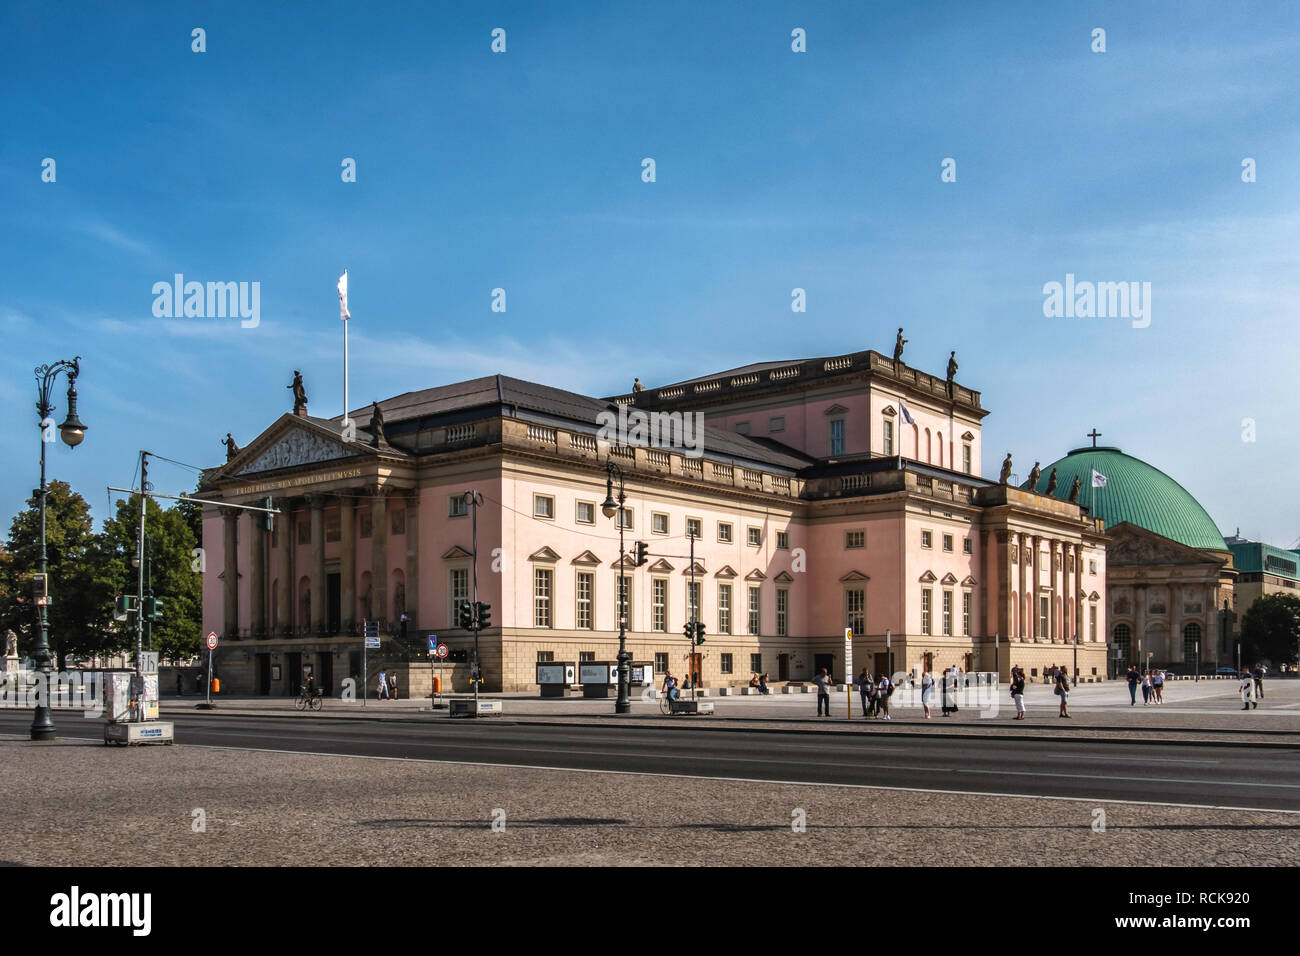 Berlin,Mitte, Unter den Linden. State Opera House - Old historic Neo-classical building newly re-opened after reconstruction.                          - Stock Image